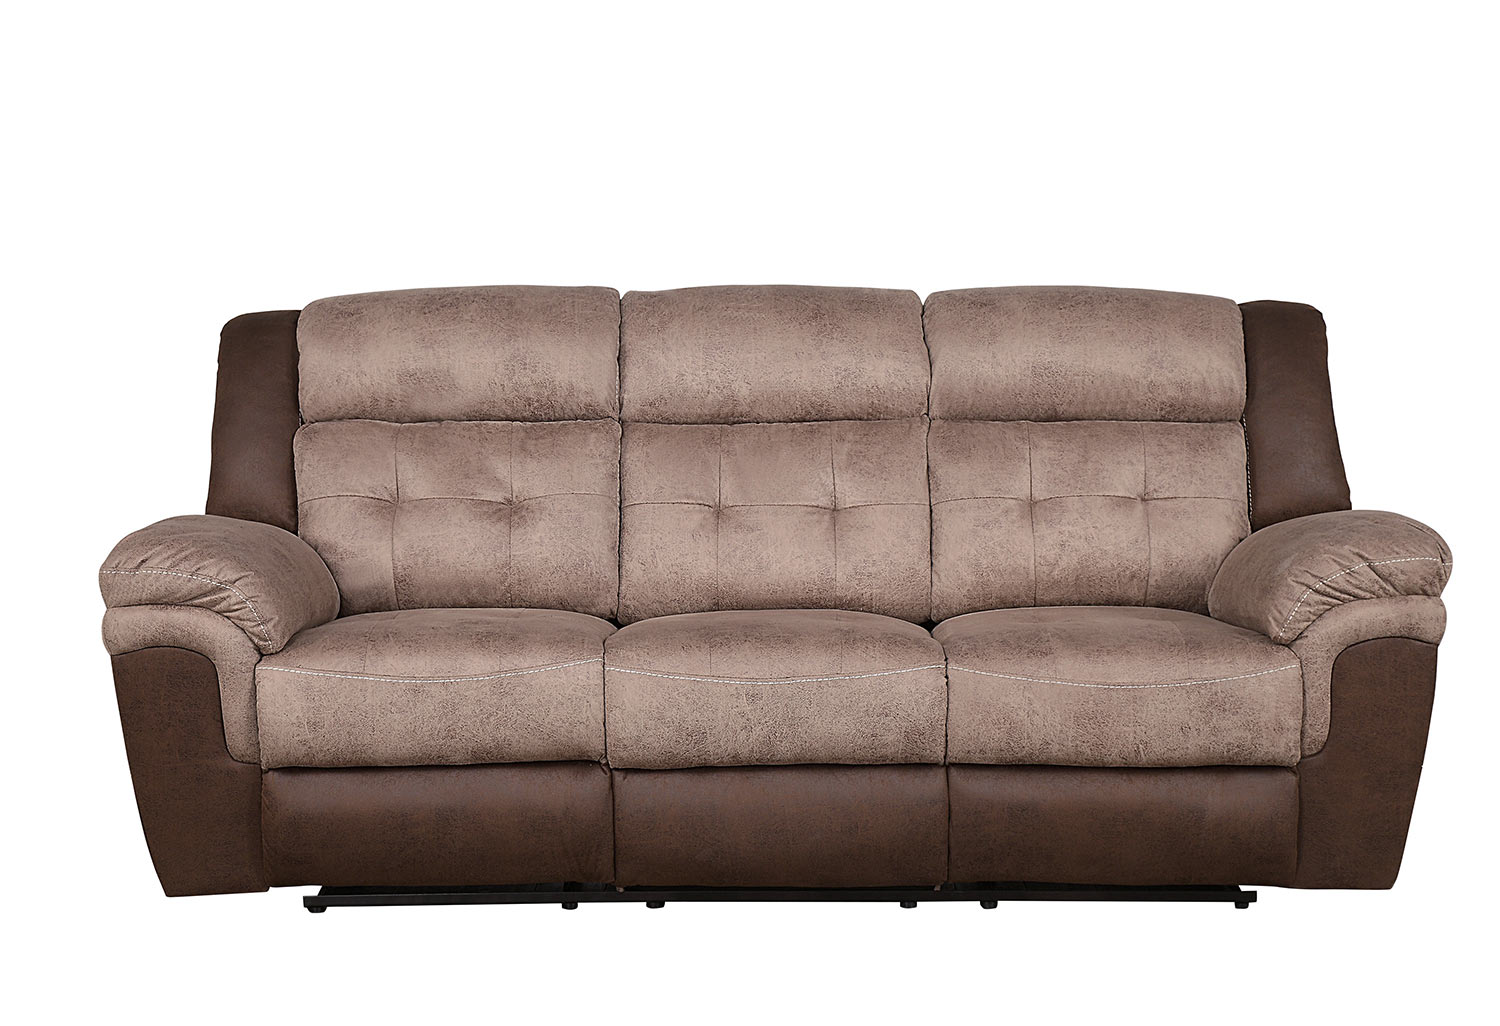 Homelegance Chai Double Reclining Sofa - Brown and dark brown polished microfiber